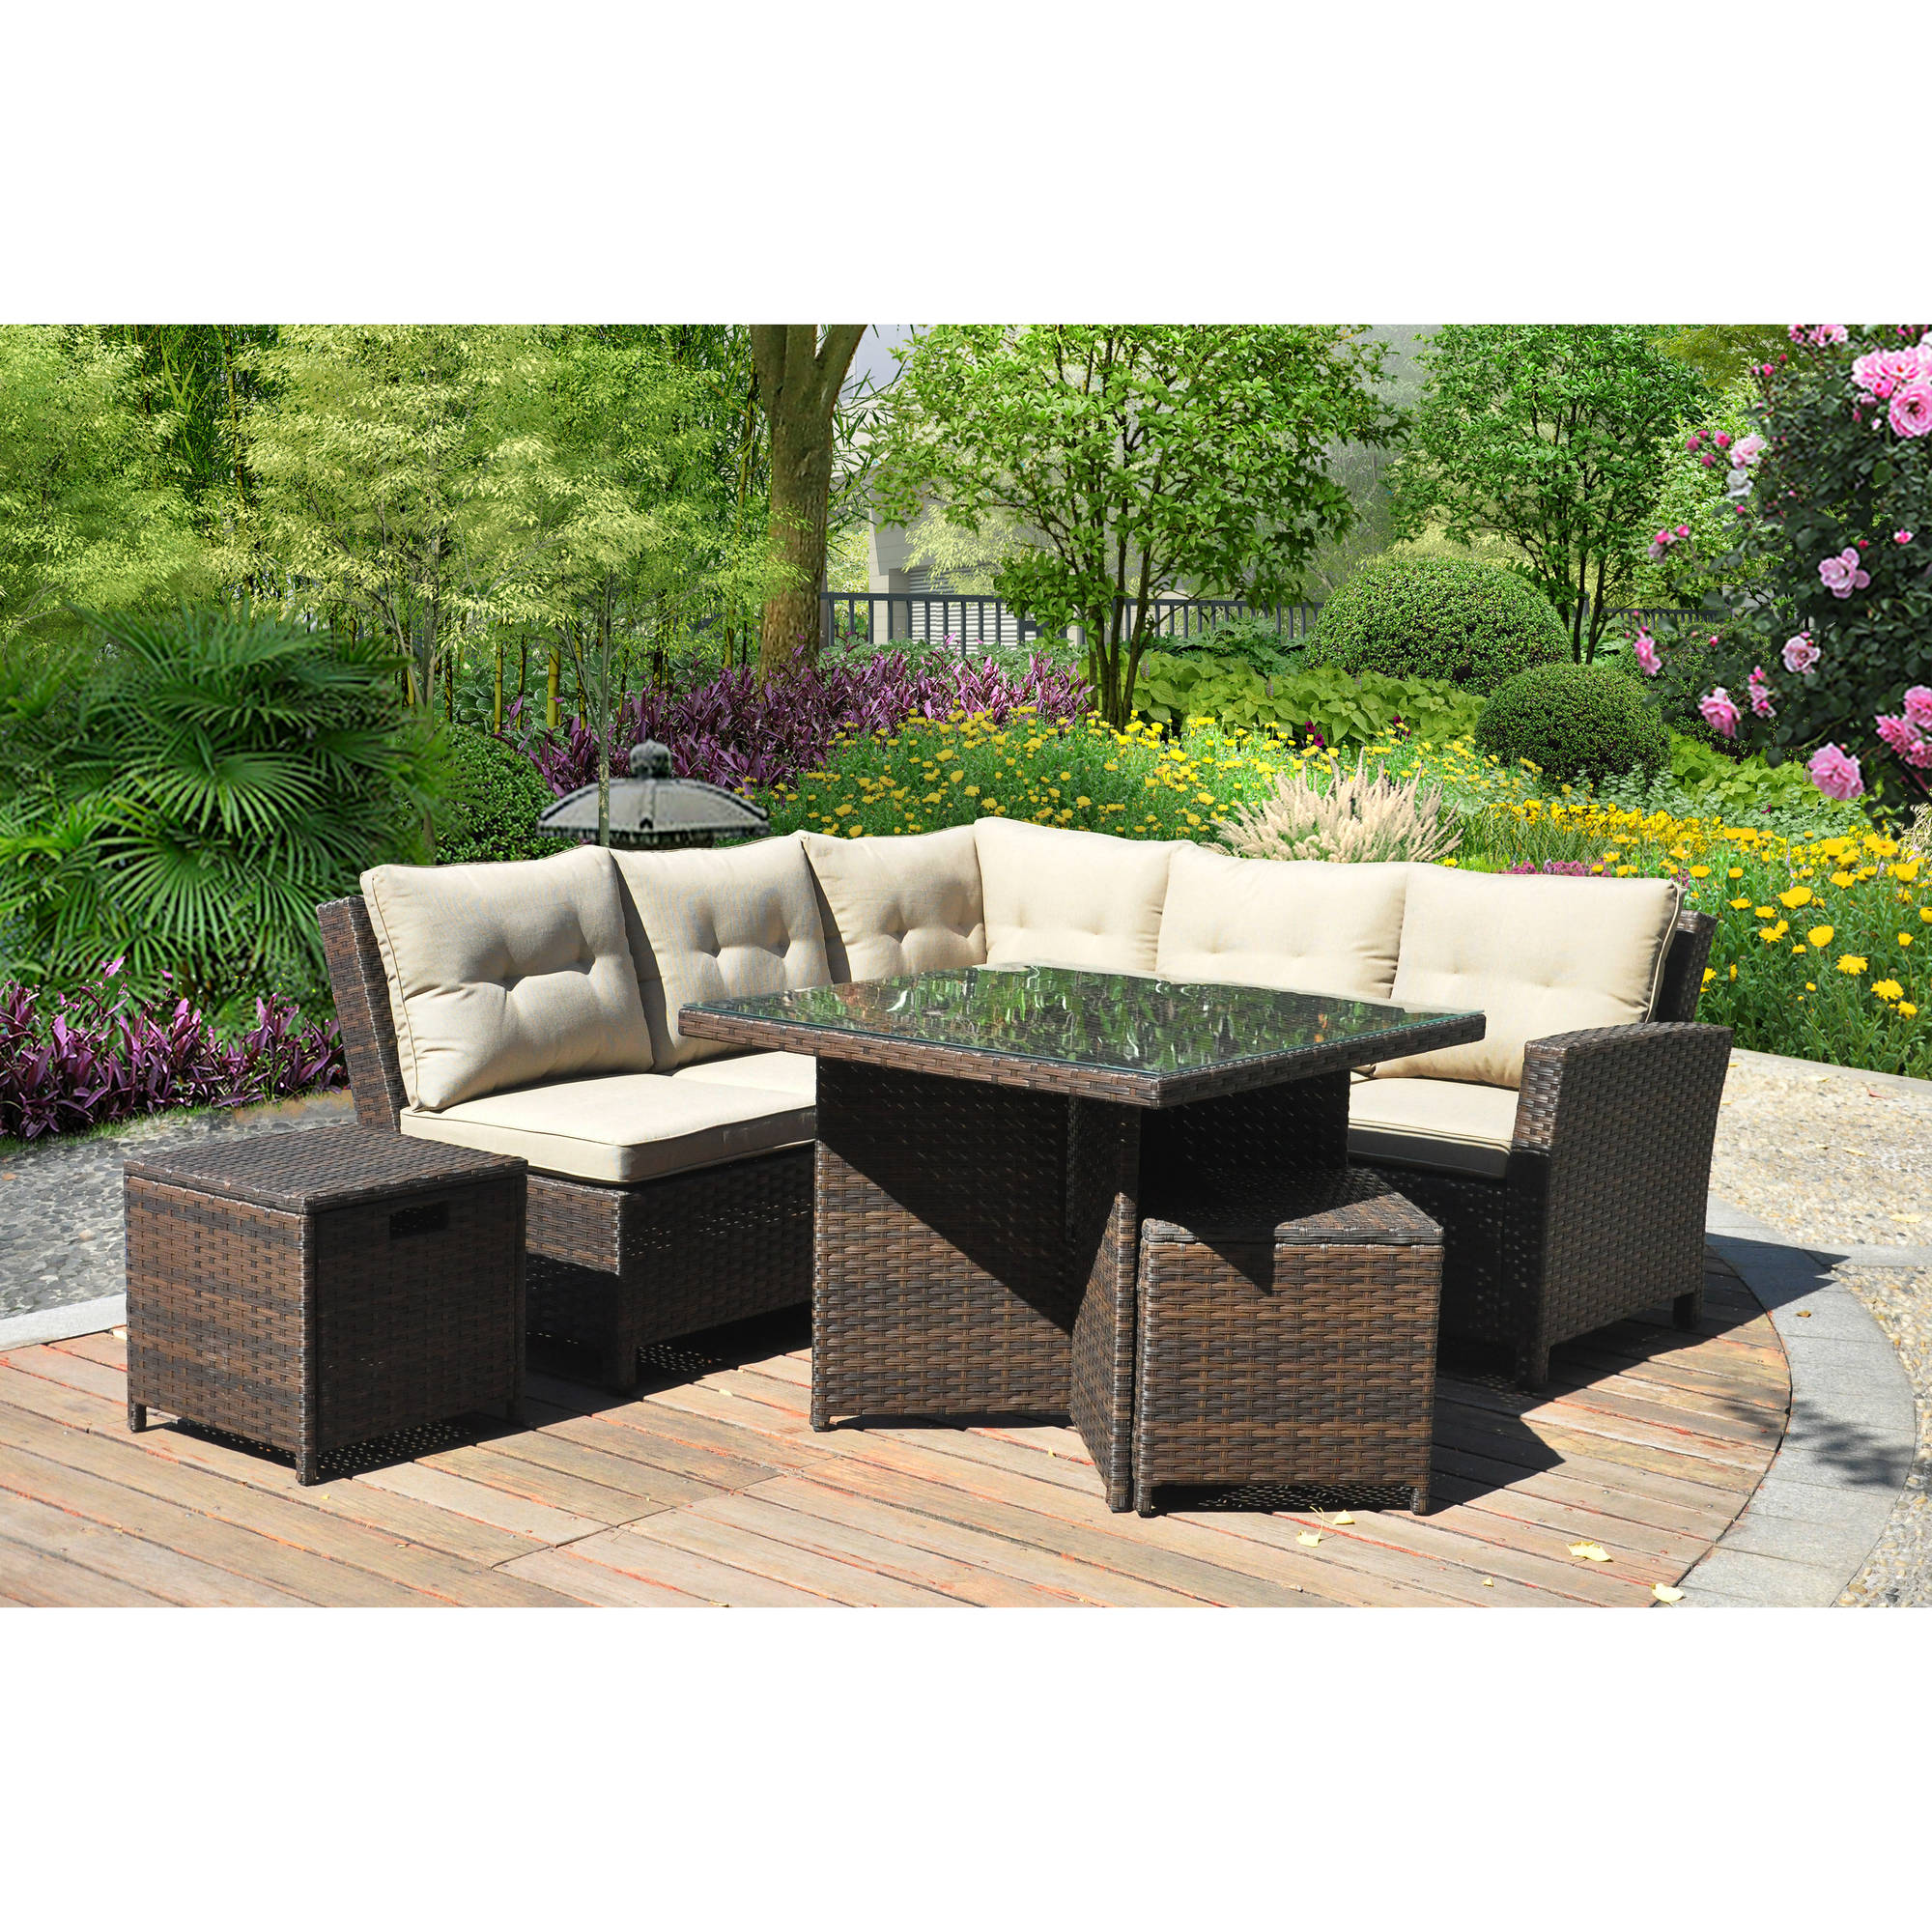 Mainstays Ragan Meadow II 7 Piece Outdoor Sectional Sofa Seats 5